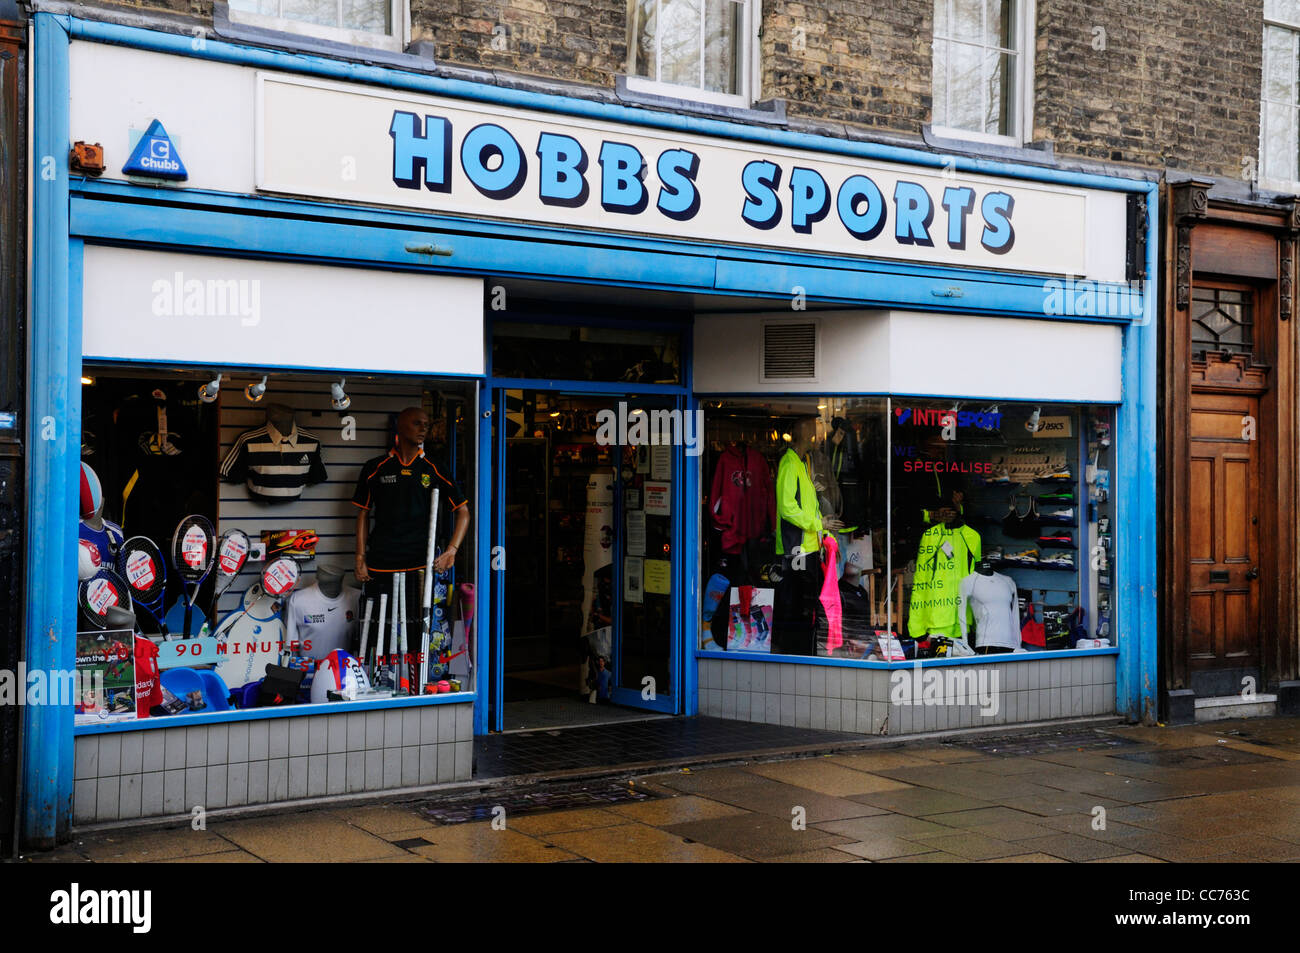 Uk Sport Photosamp; Stock Images Alamy Shop 43Rj5LA